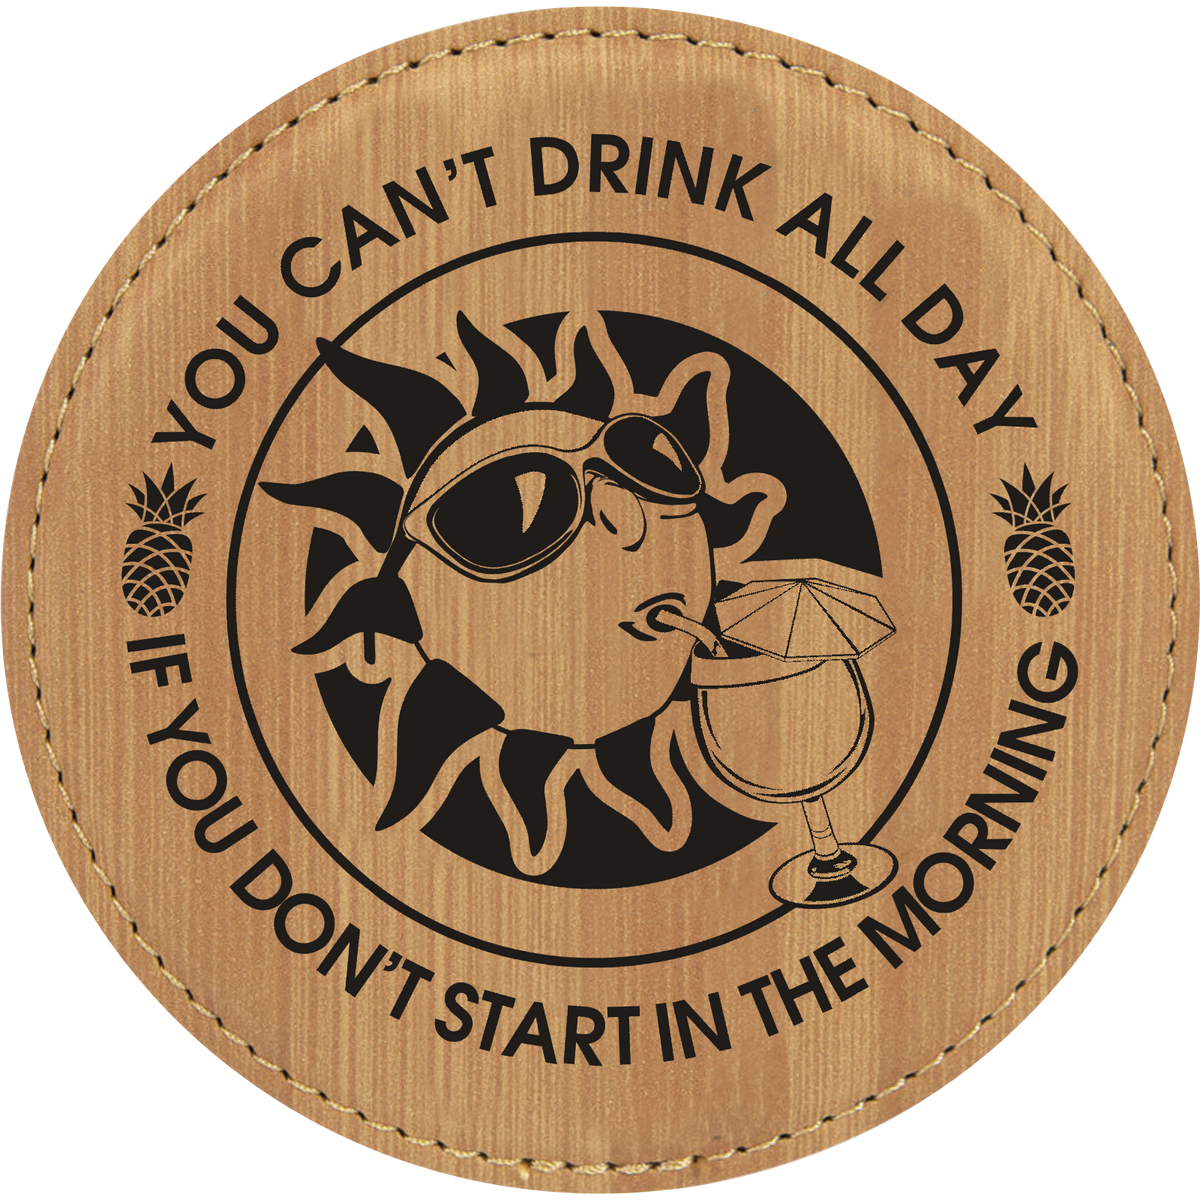 You Can't Drink All Day If You Don't Start In The Morning - Leatherette Round Coasters (Set of 6)